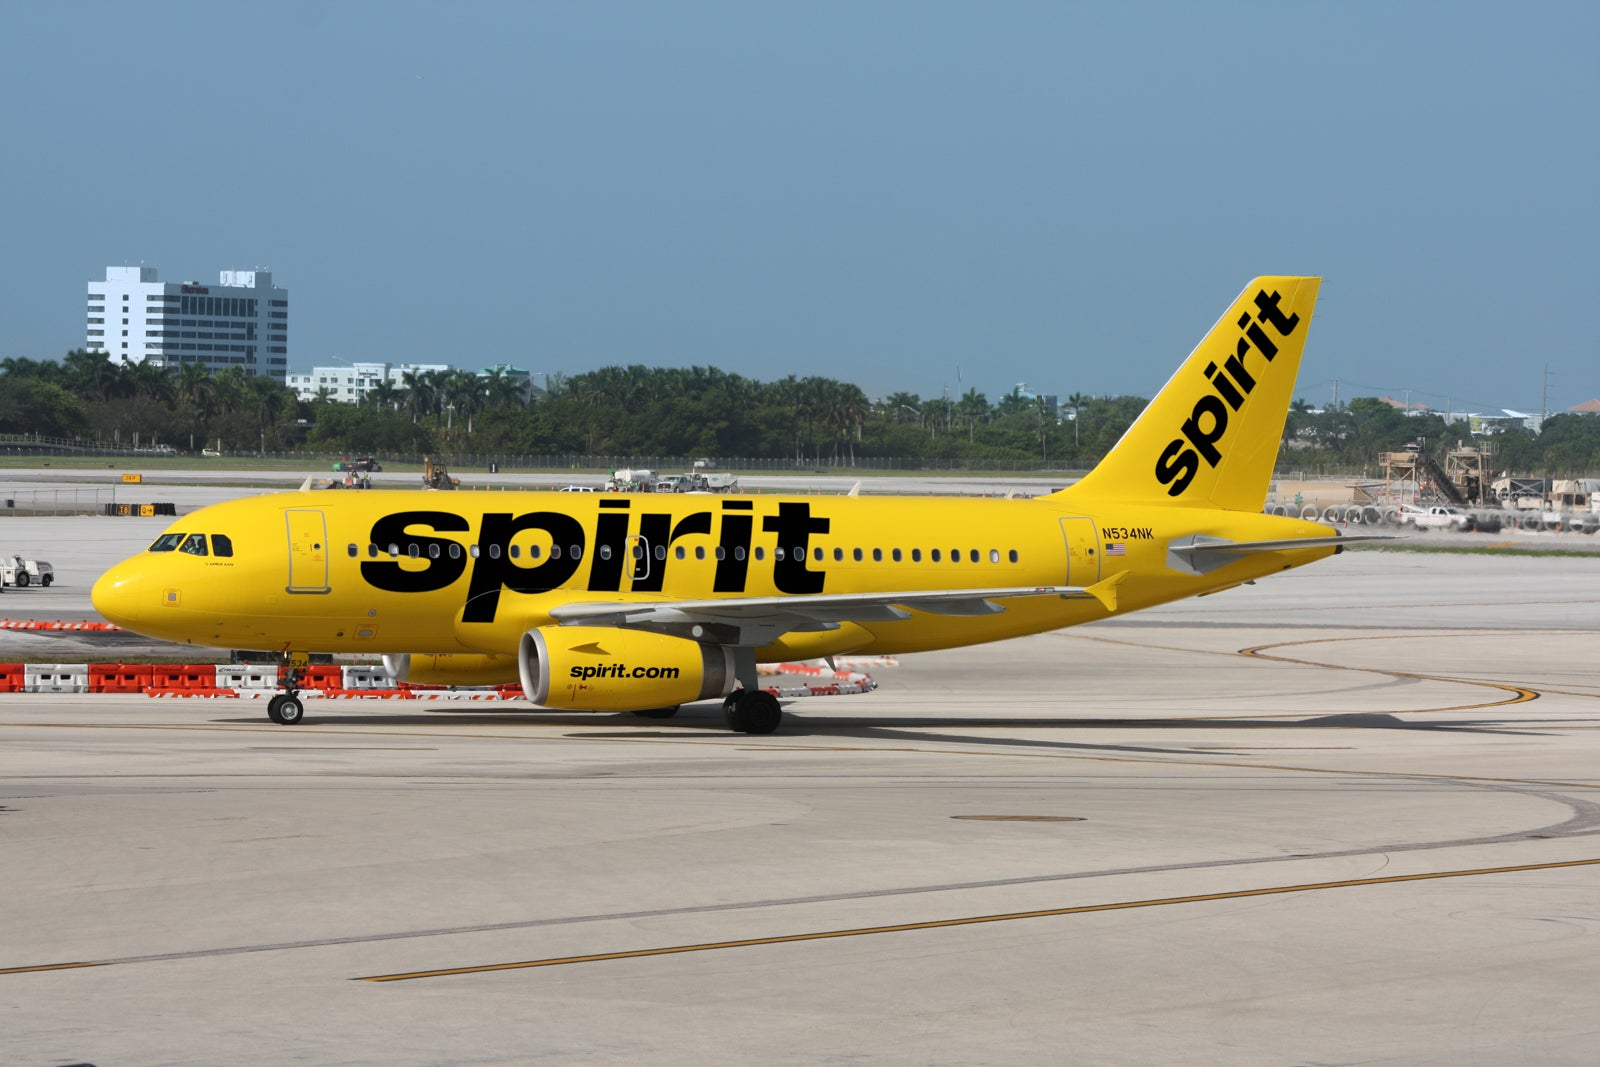 Spirit Airlines adds 3 routes, new city in latest pandemic-era shakeup - The Points Guy